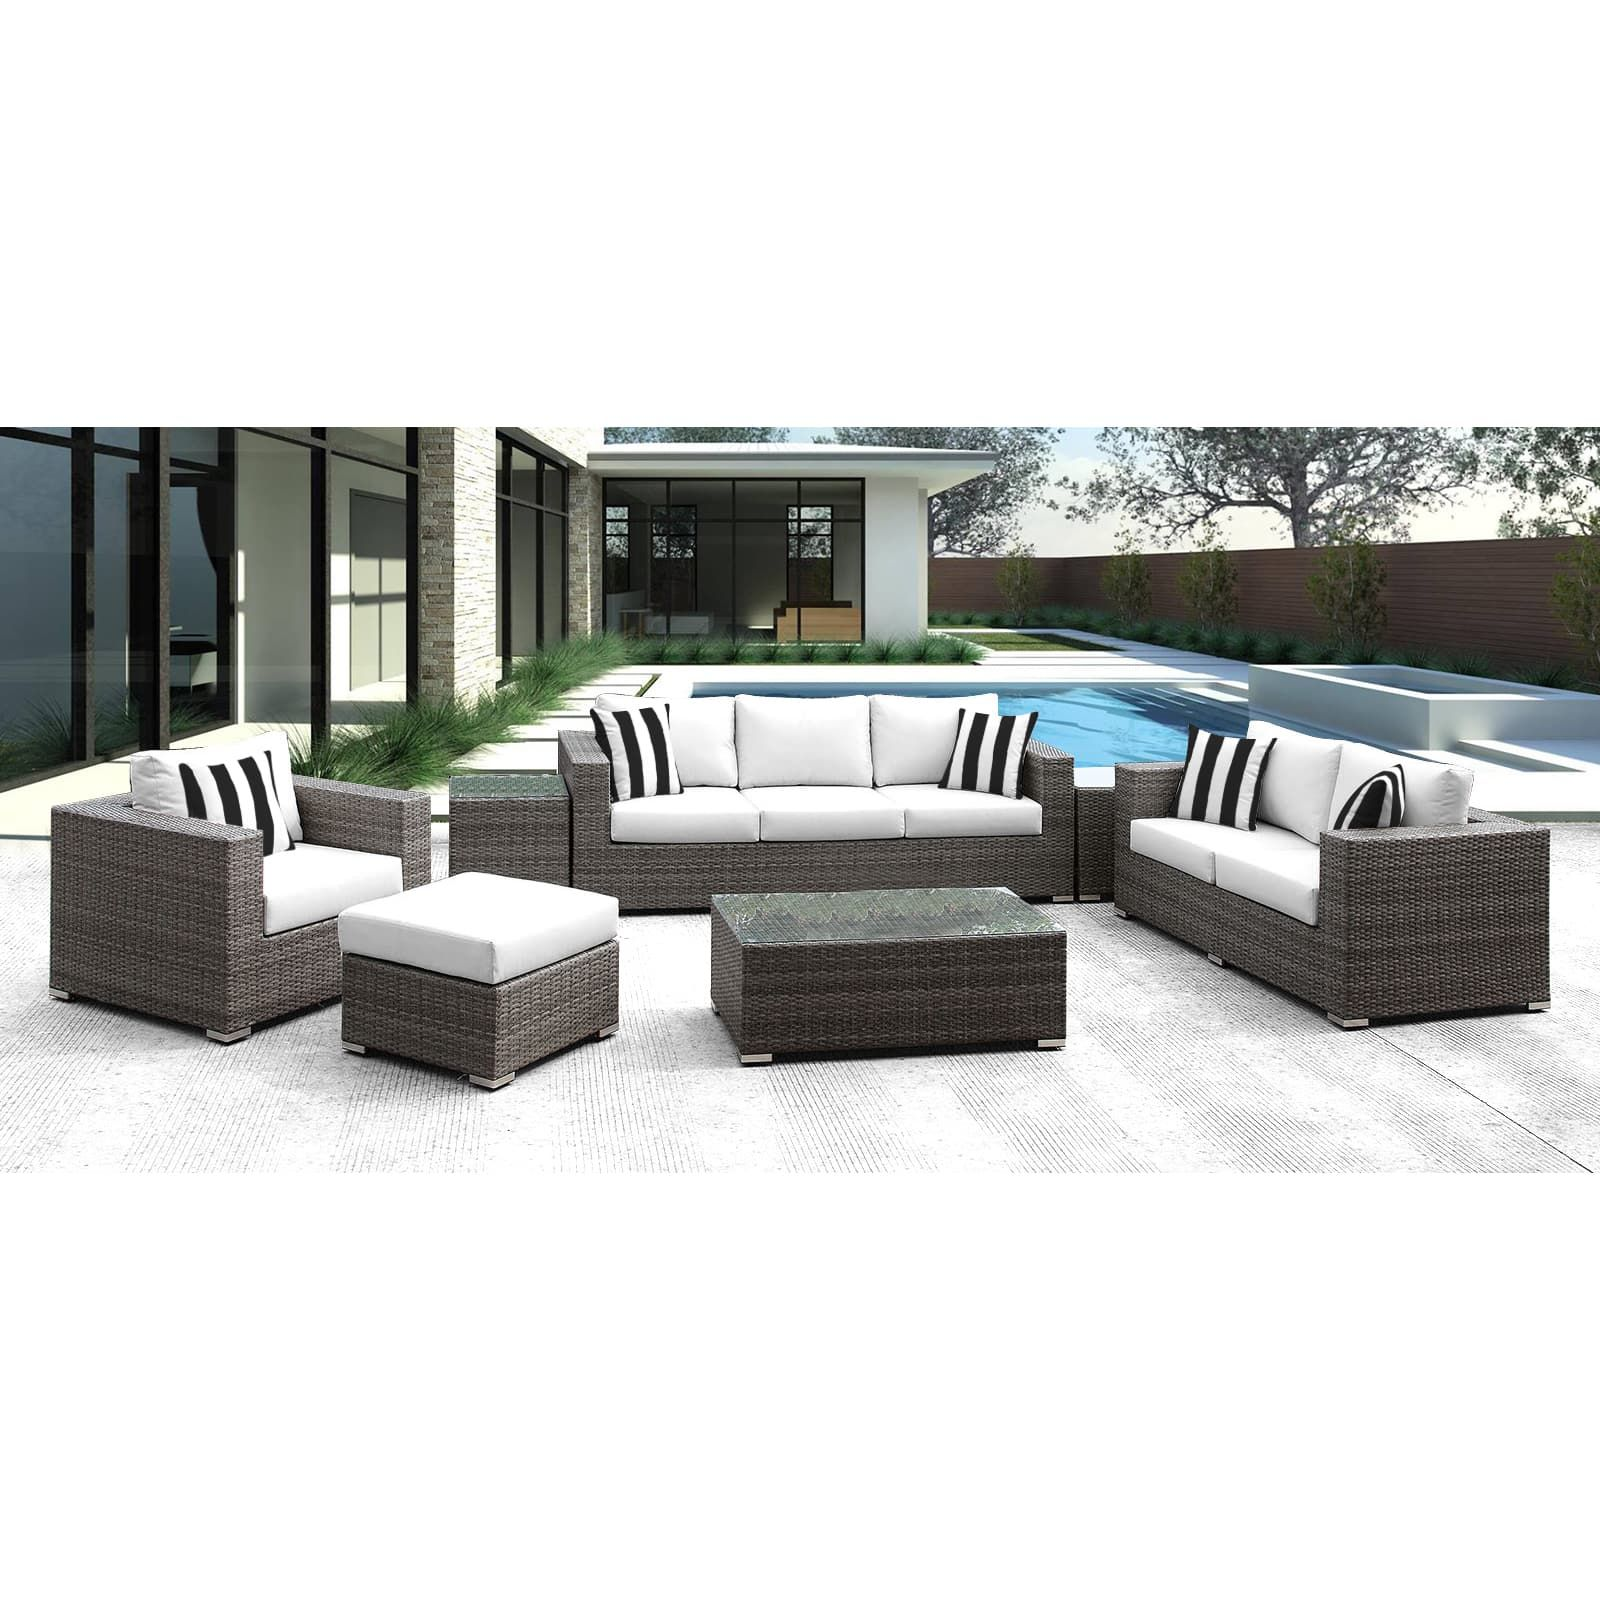 Solis lusso piece outdoor sofa grey wicker rattan with white